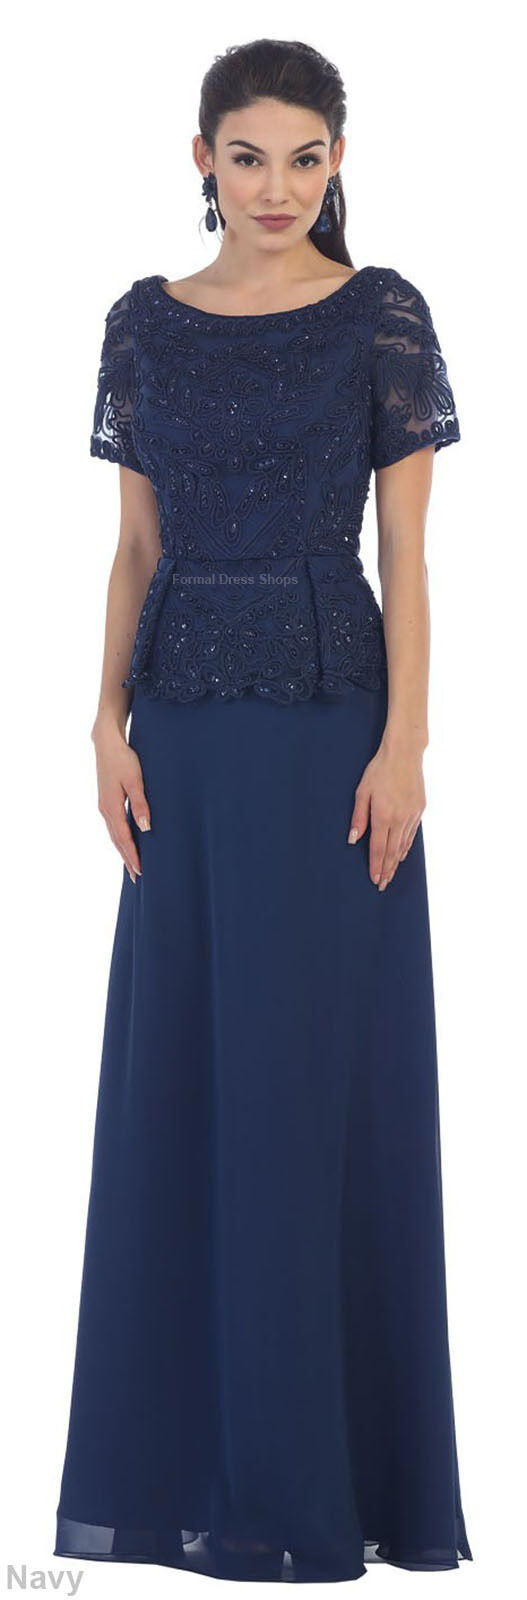 Special Occasion Evening Formal Classy Demure Church Dress Modest